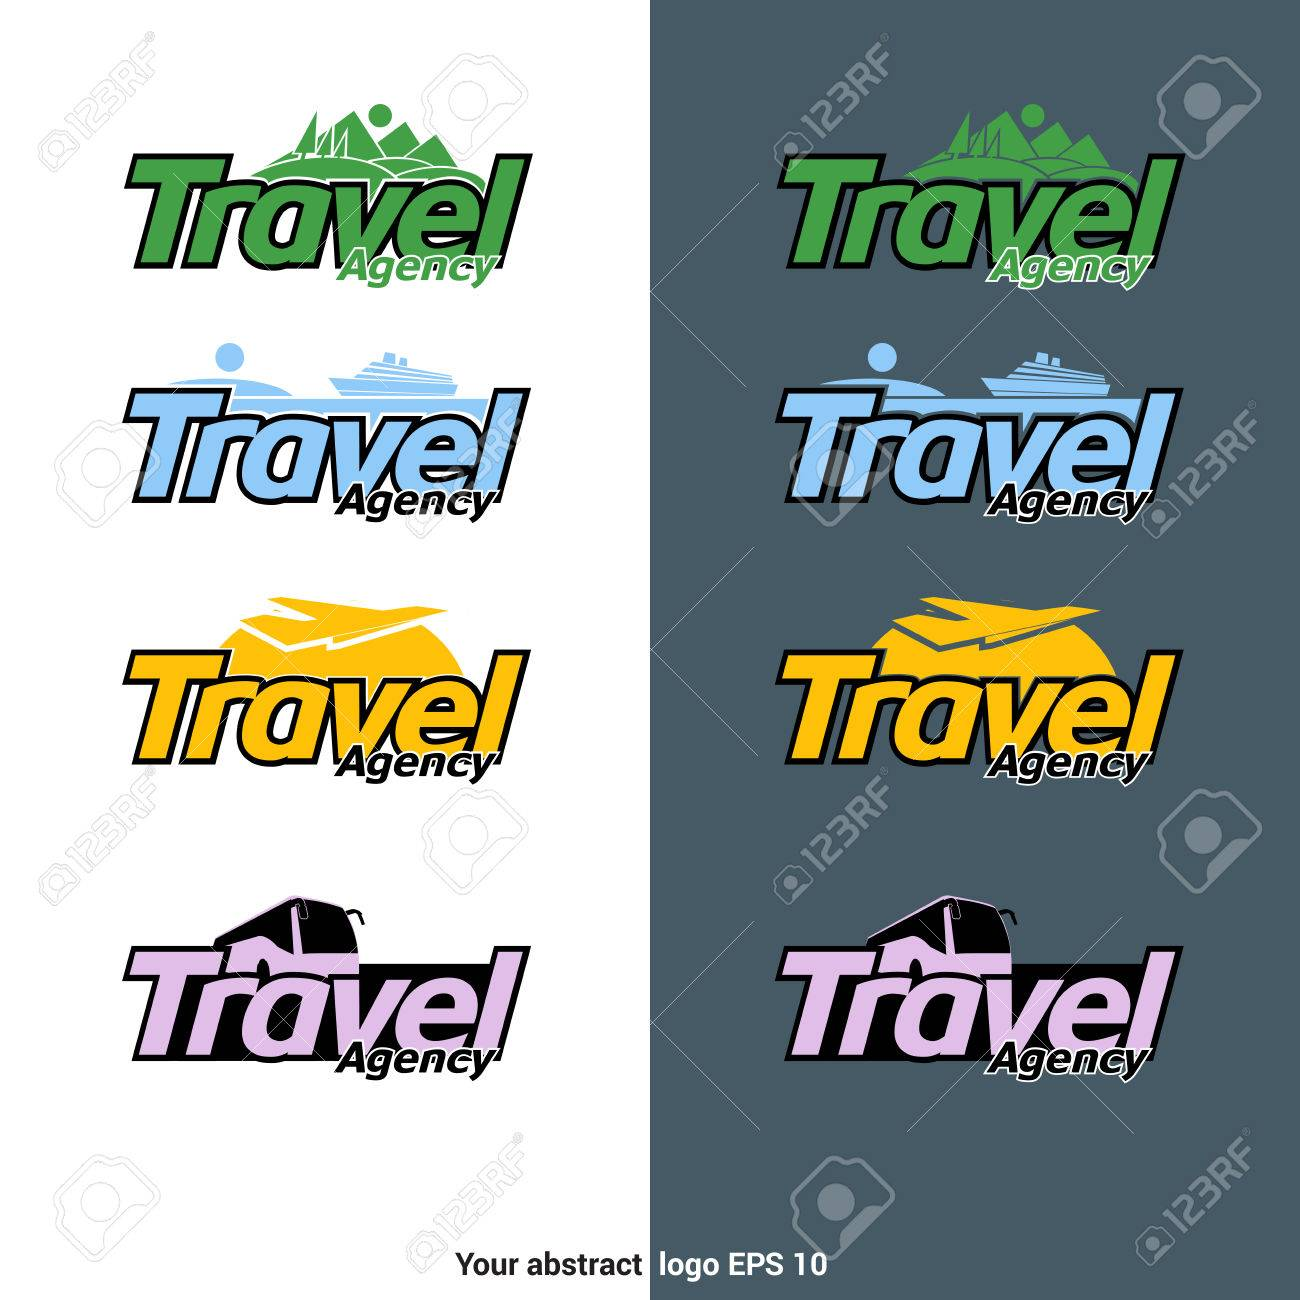 Travel Agency Business Cards Stock Photos. Royalty Free Travel ...